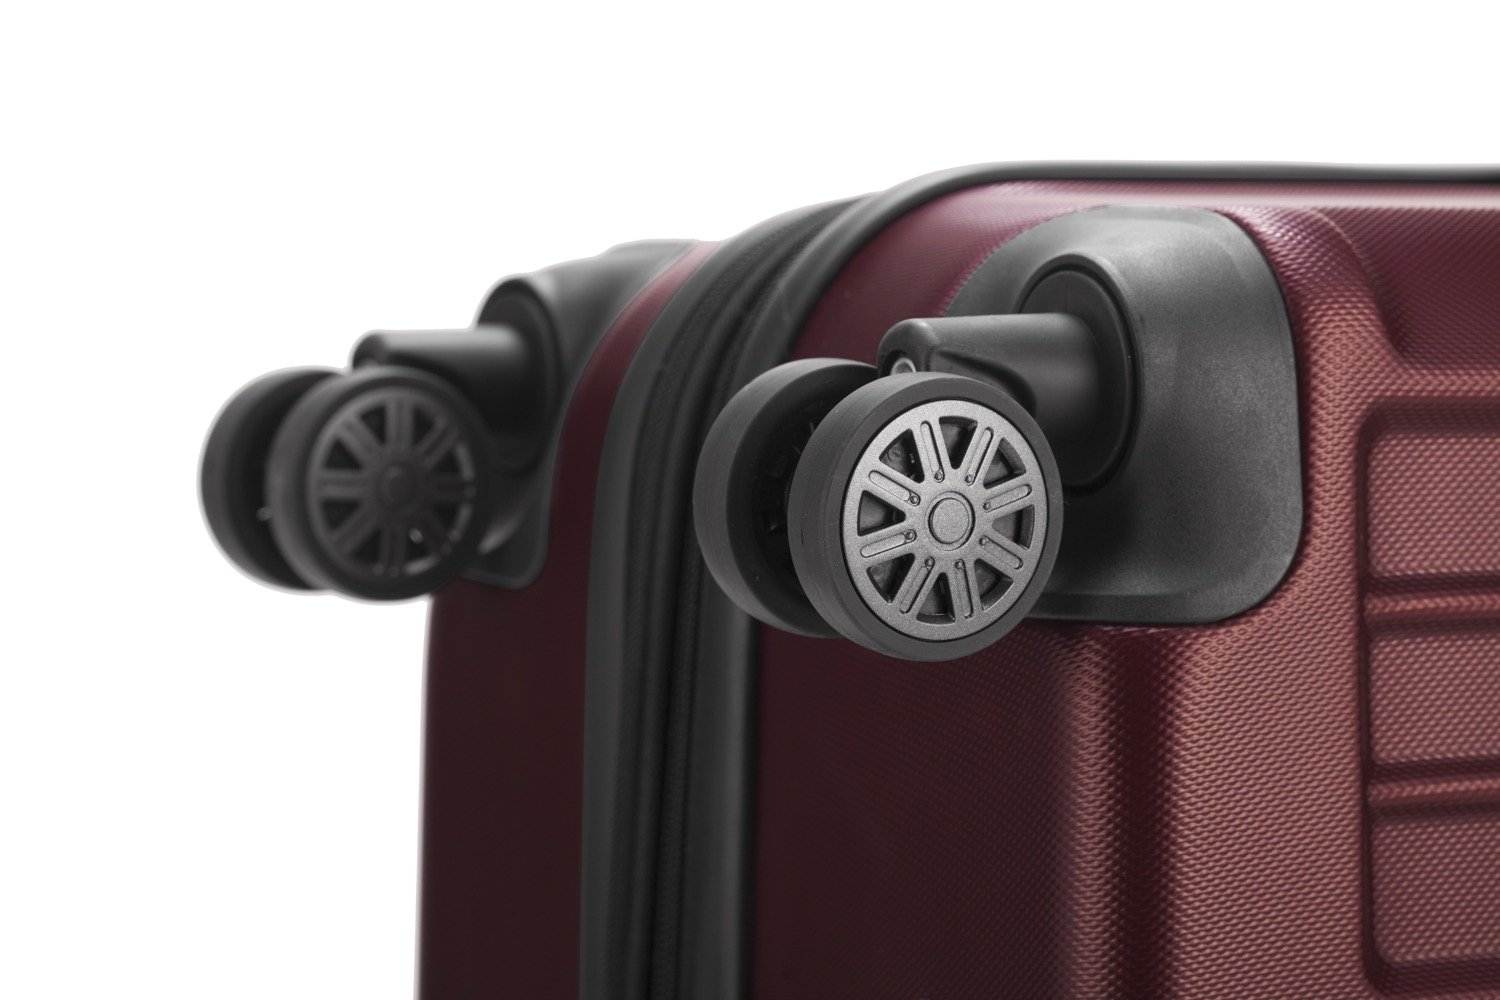 HAUPTSTADTKOFFER X-Berg - Set of 3 Hard-side Luggages matt Suitcase Hardside Spinner Trolley Expandable (20¡°, 24¡° & 28¡°) TSA Burgundy by Hauptstadtkoffer